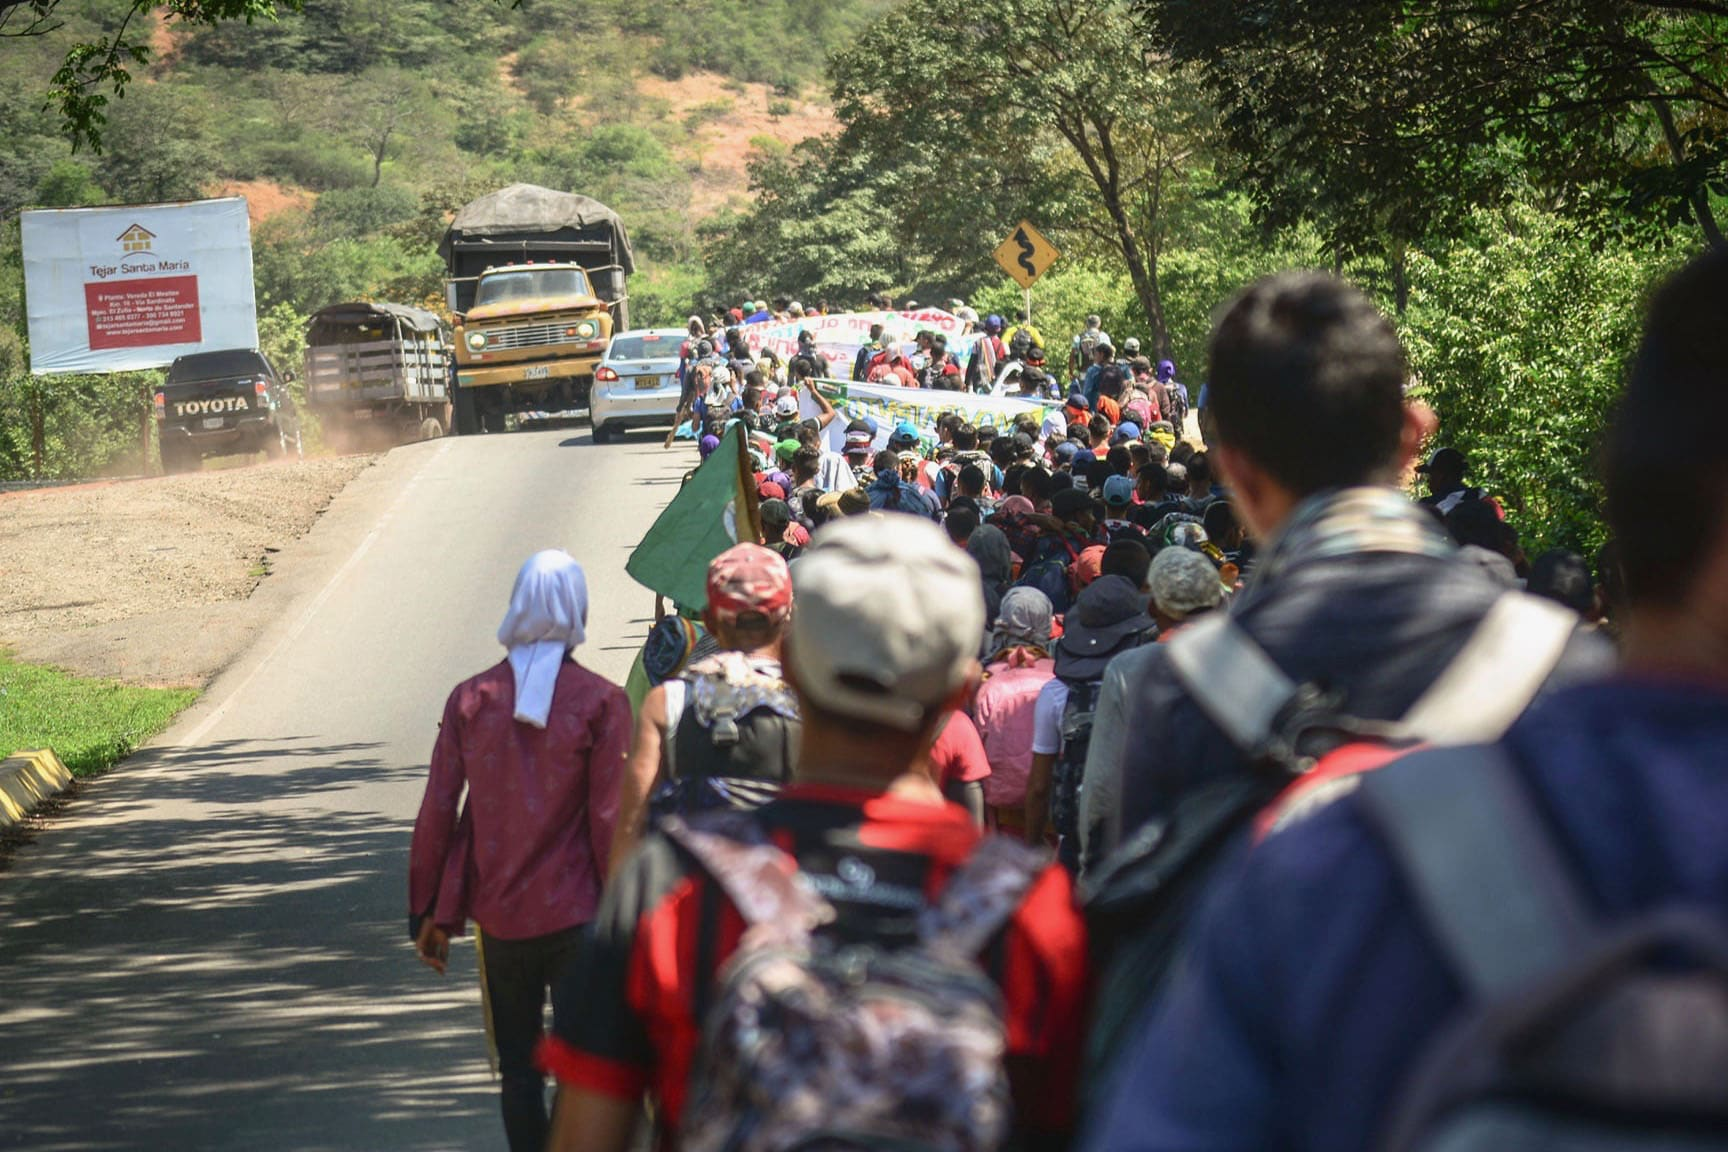   Tens of thousands will participate in the strike across Colombia on November 21 Photo Colombia Informa   MR Online